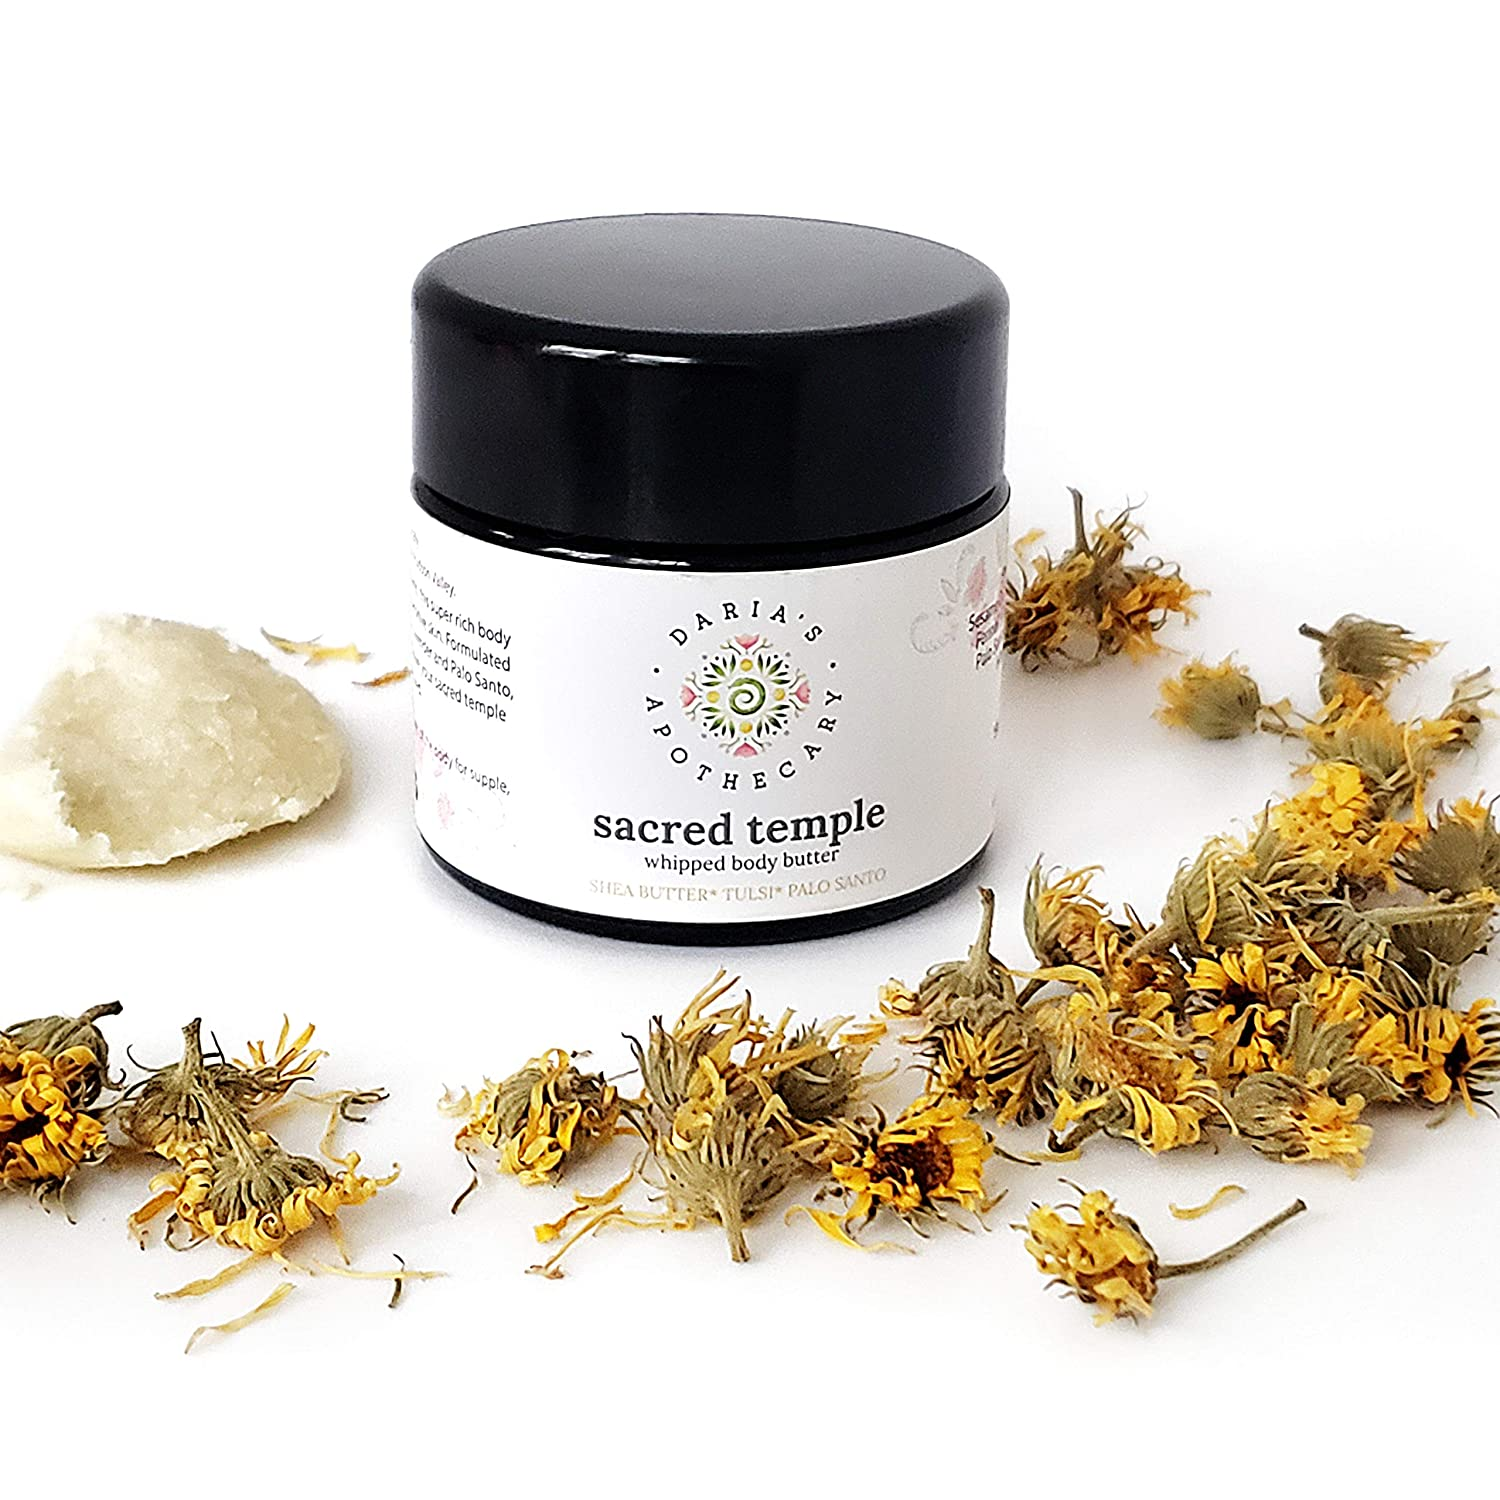 Biodynamic Body Butter – Cream Butte Whipped with Popular products Shea Max 47% OFF